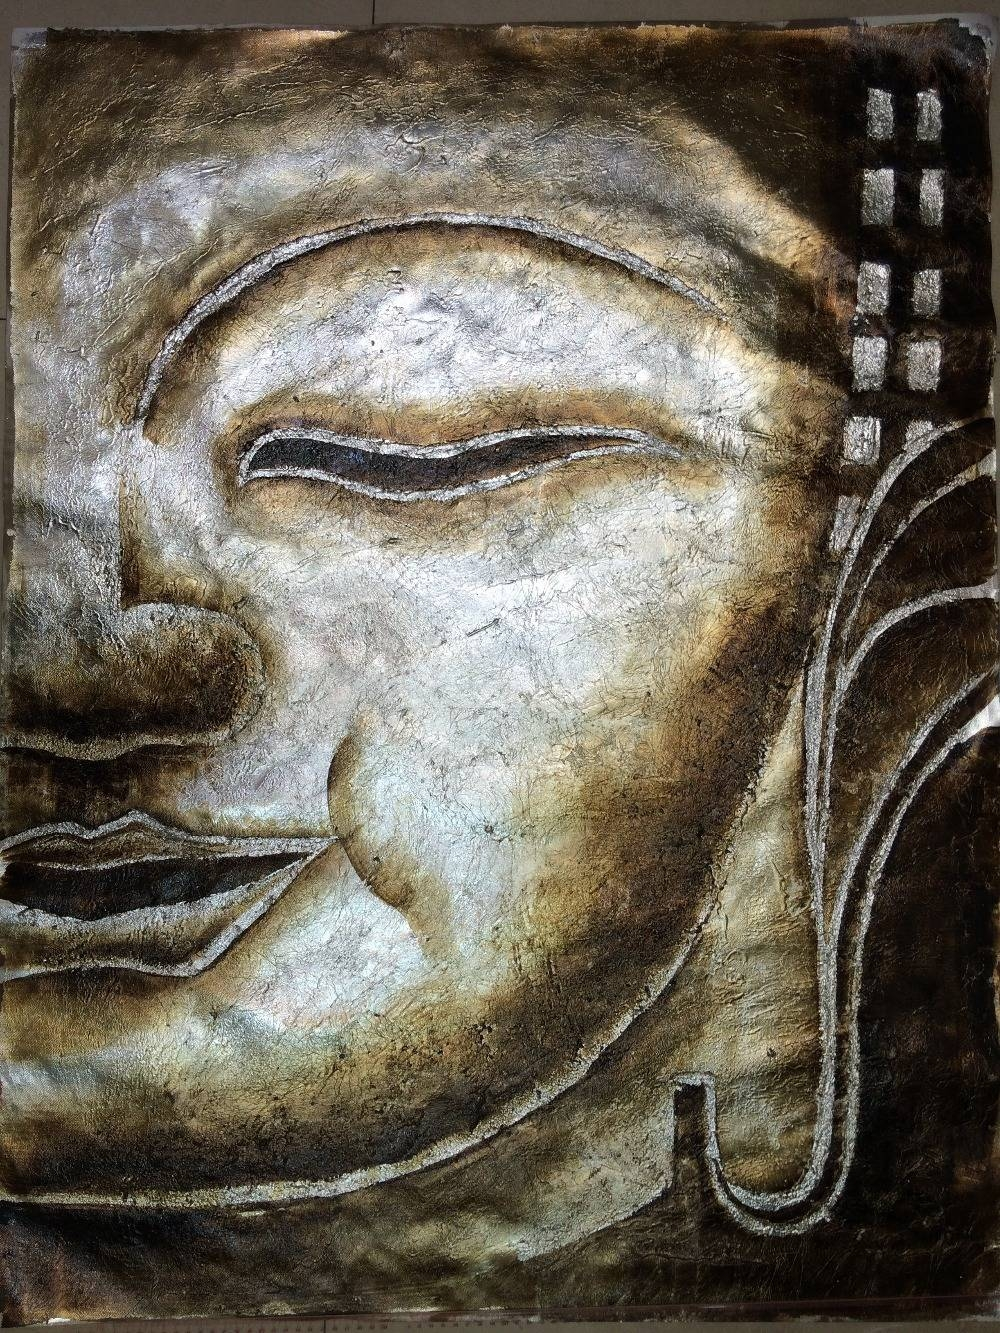 Hot Sale 100% Handpainted Canvas Painting Modern Silver Foil Of With Current Silver Buddha Wall Art (View 9 of 15)